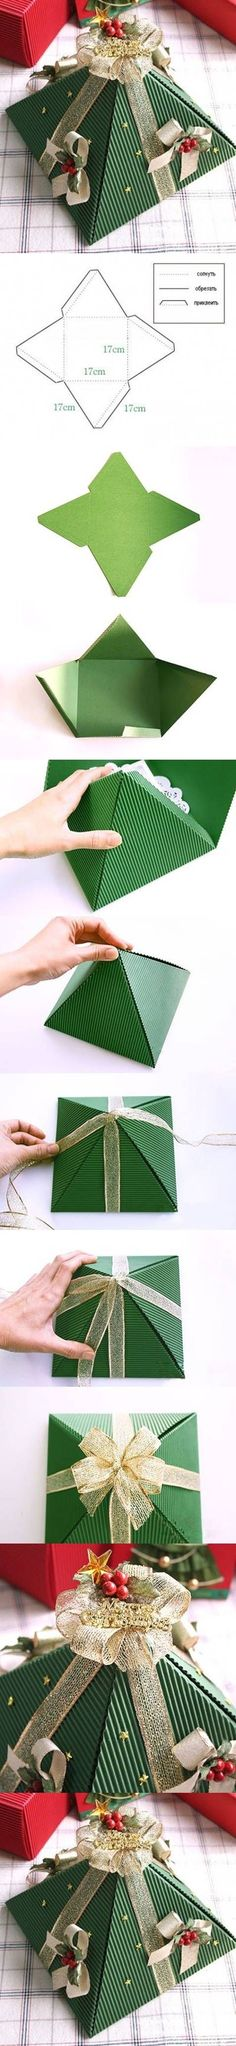 DIY Pyramid Christmas Box